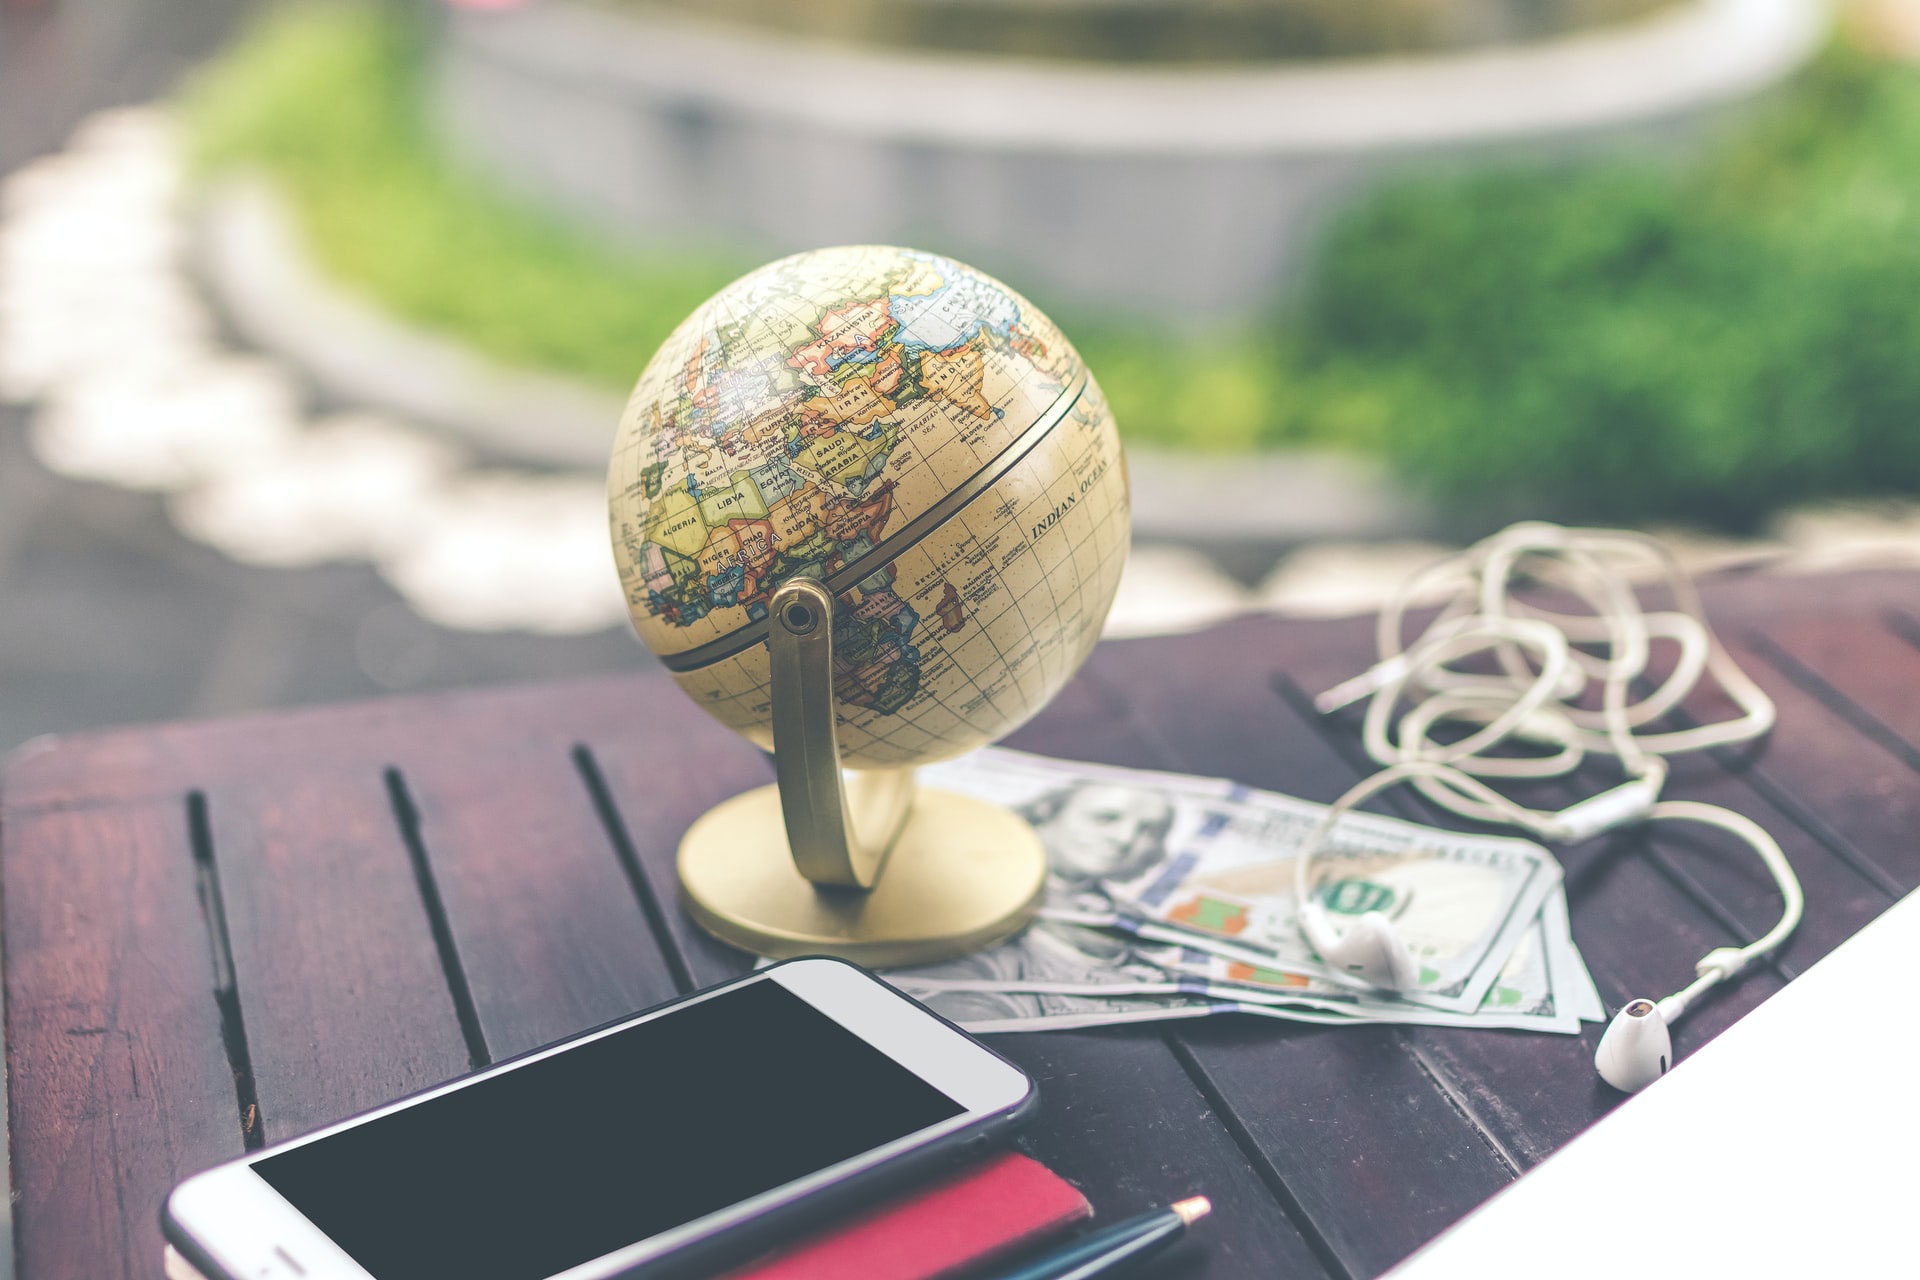 Mini globe outside on table with money